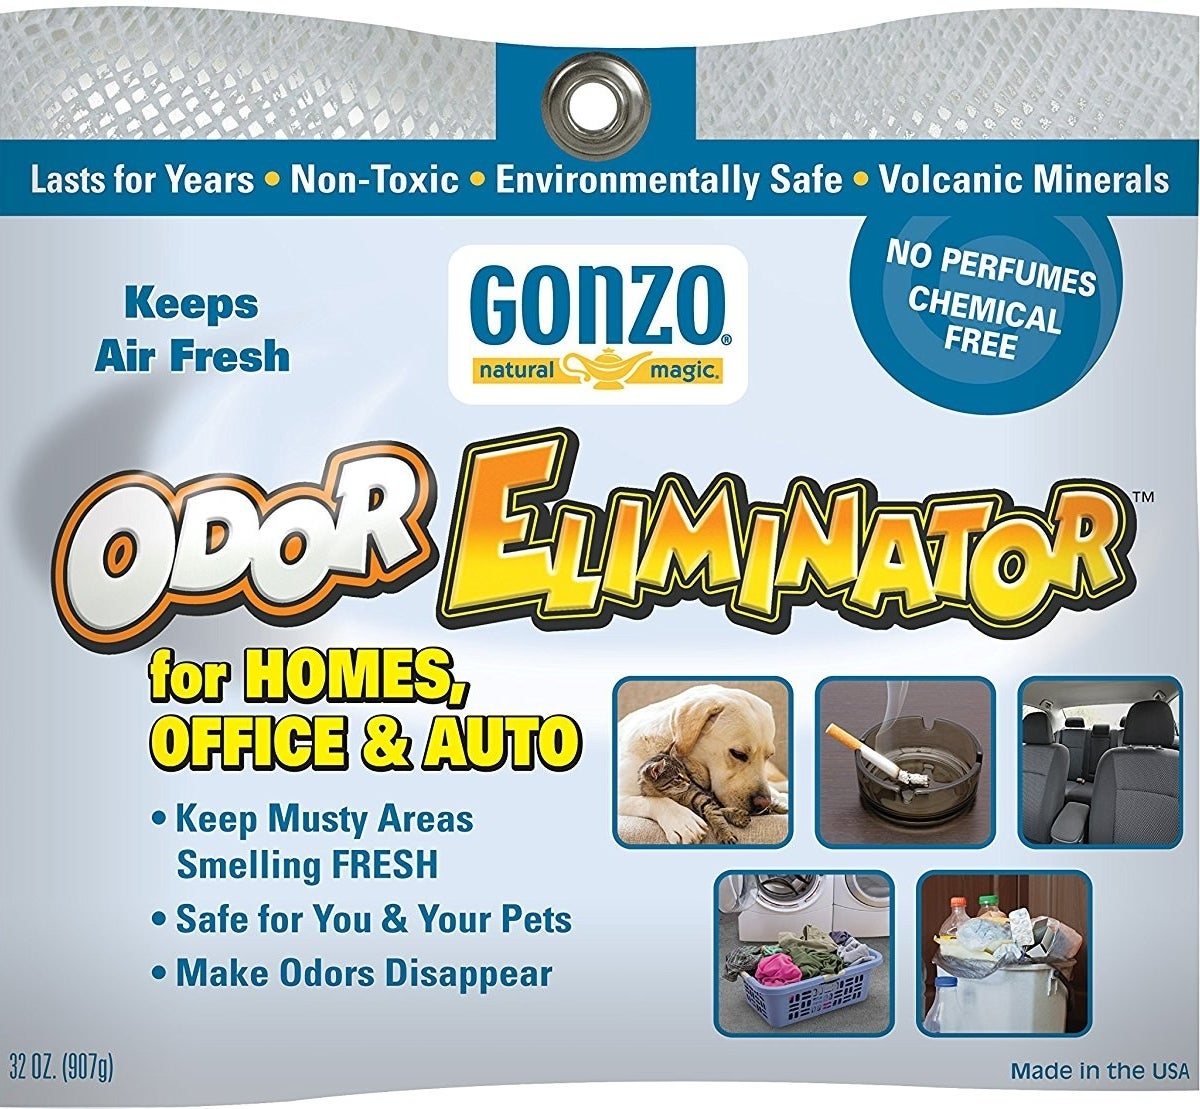 The front label of the Gonzo Odor Eliminator for homes, offices, and auto